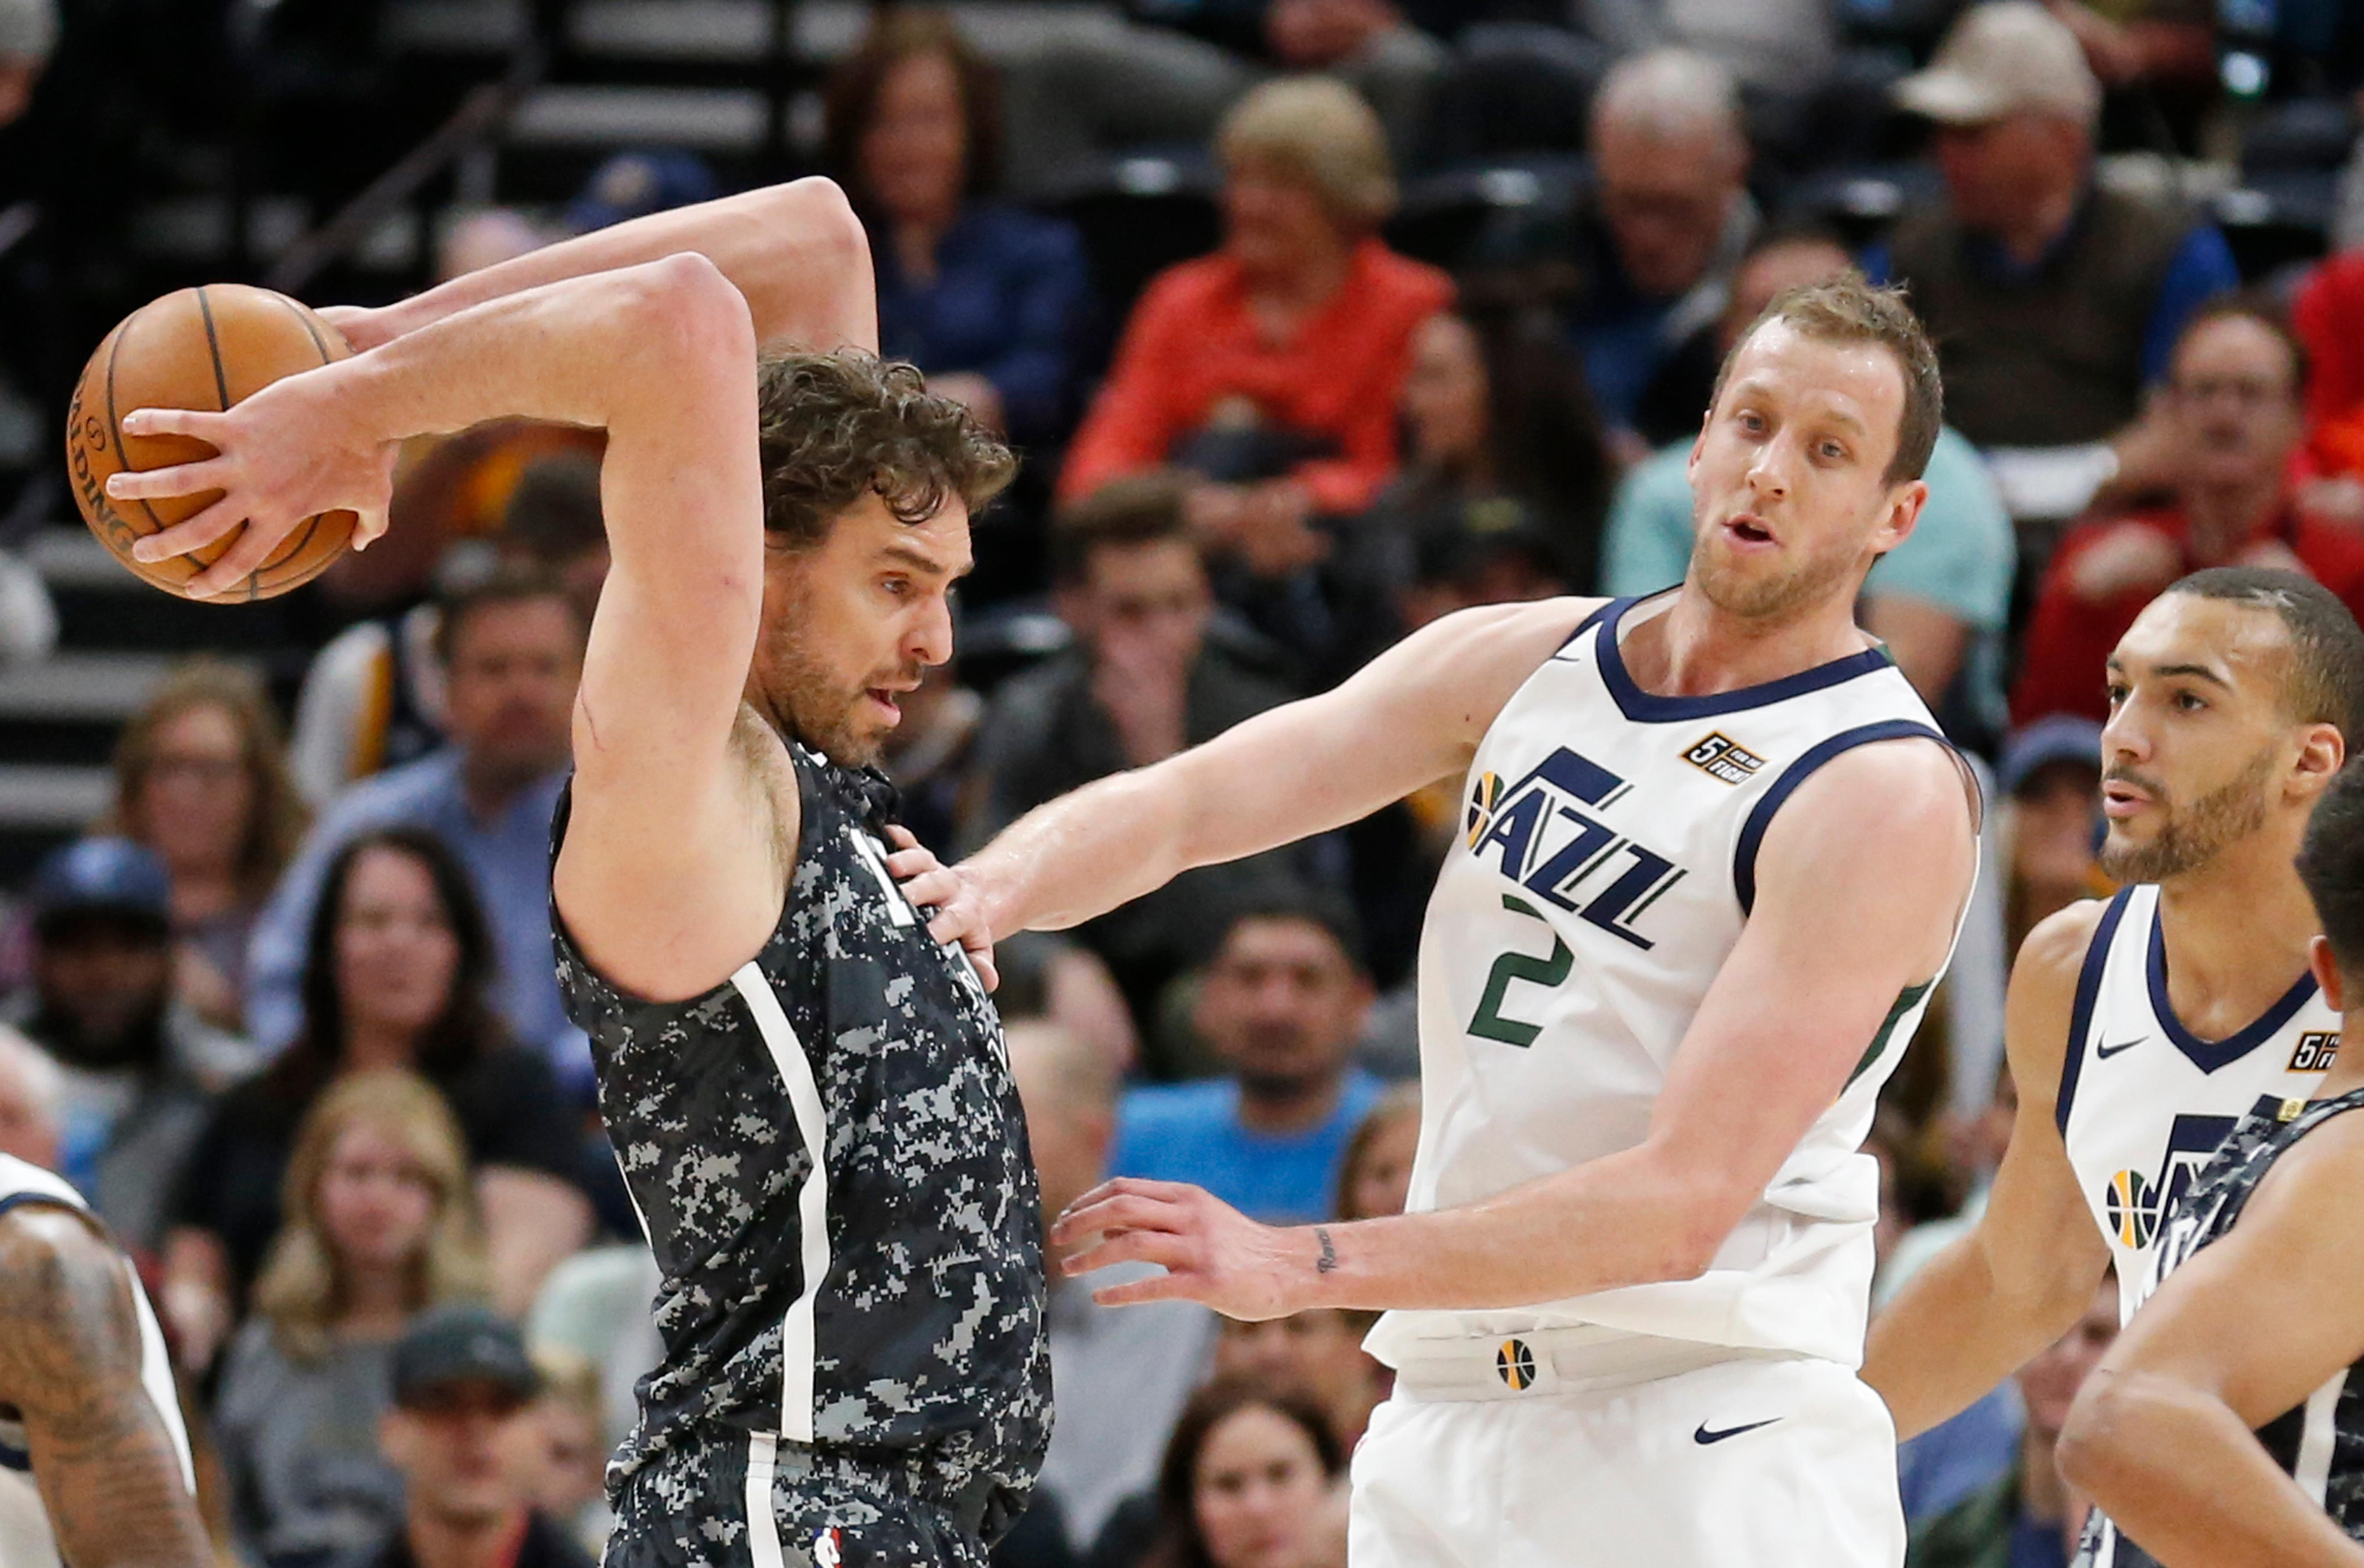 San Antonio Spurs center Pau Gasol, left, passes the ball as Utah Jazz's Joe Ingles (2) and Rudy Gobert, right, look on in the first half during an NBA basketball game Monday, Feb. 12, 2018, in Salt Lake City. (AP Photo/Rick Bowmer)